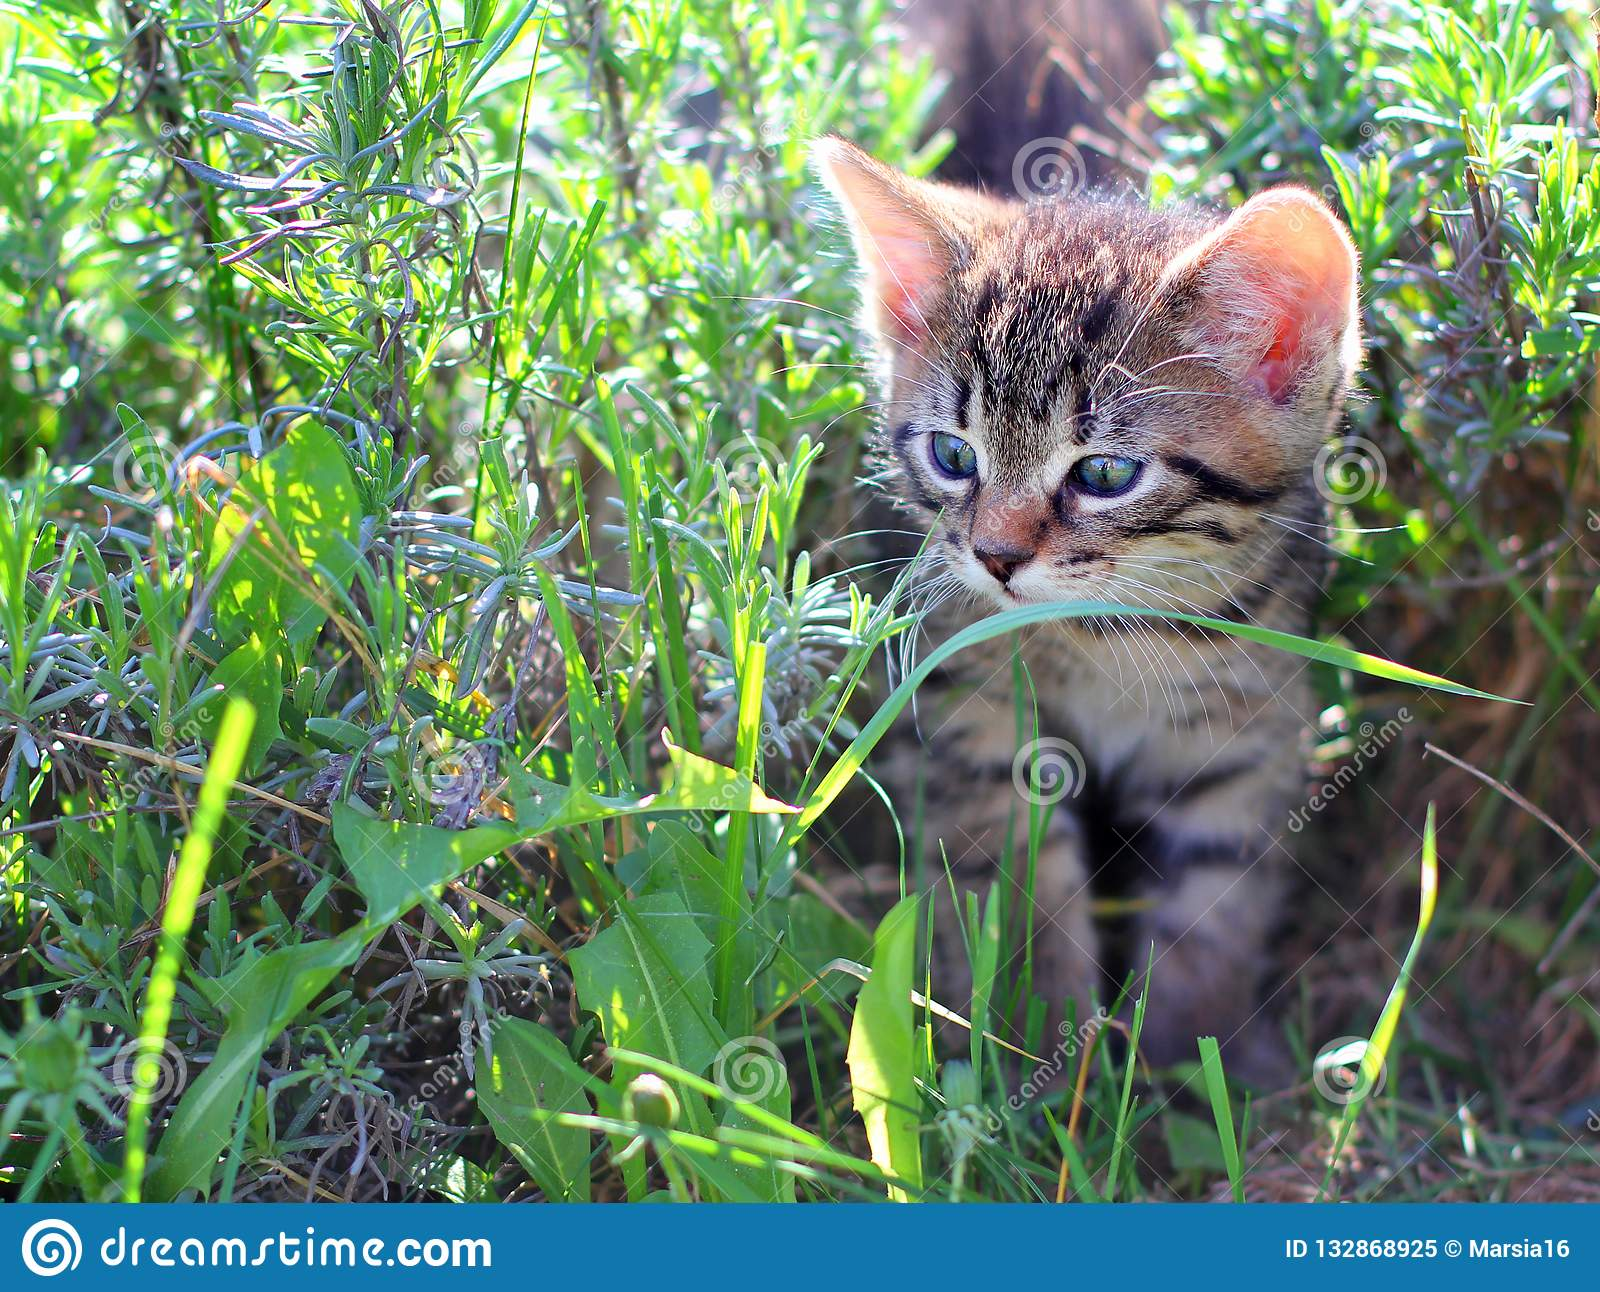 Kitten walking through the grass